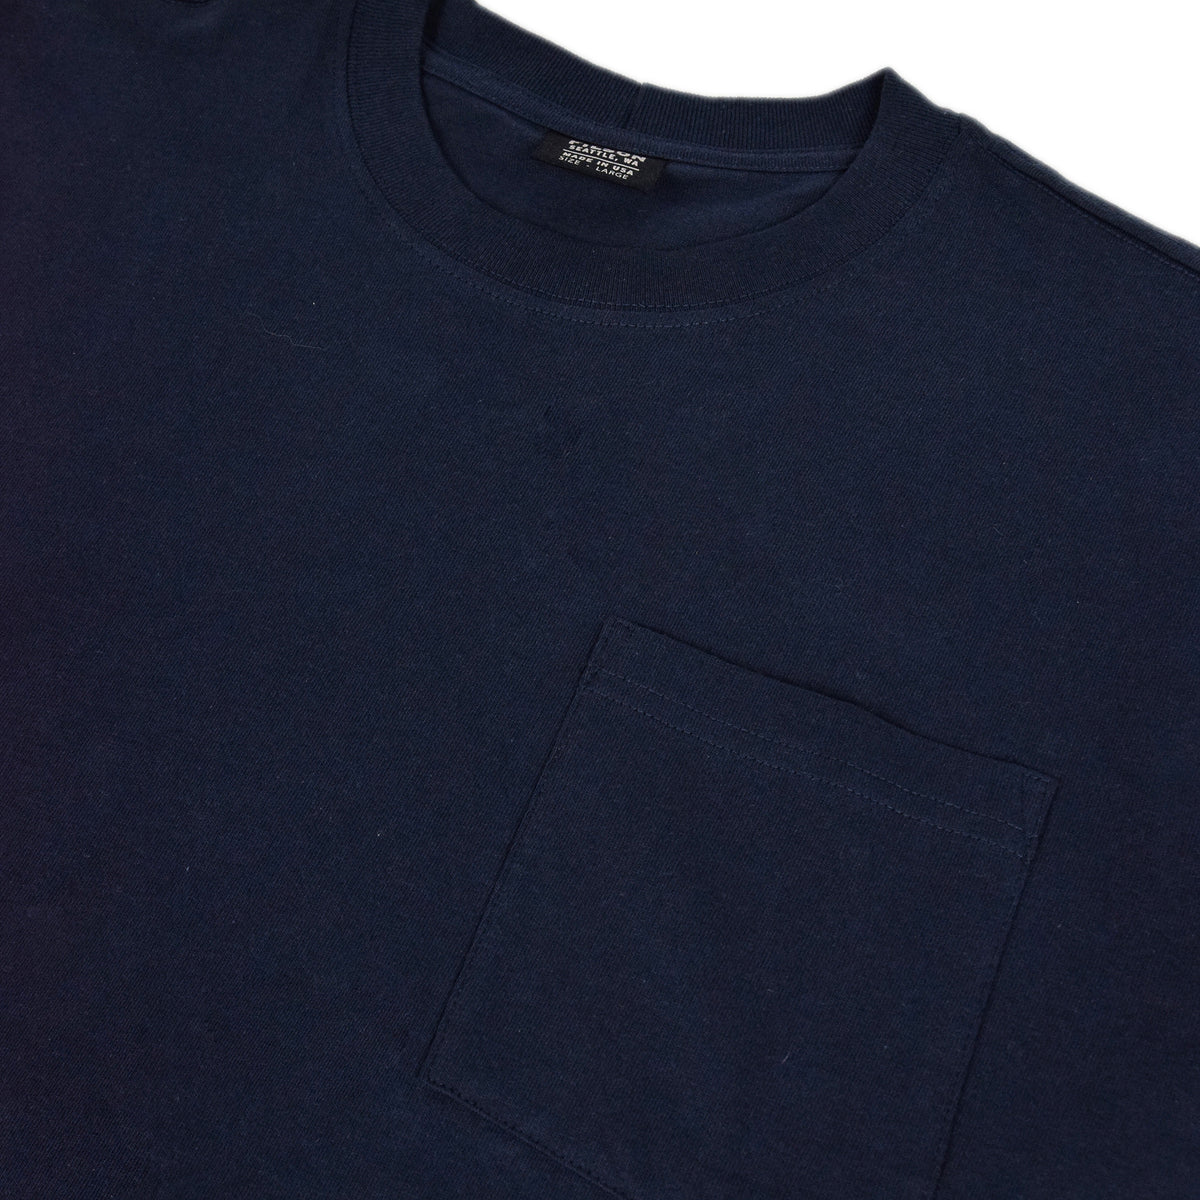 Filson Short Sleeve Outfitter One Pocket T-Shirt Dark Navy detail